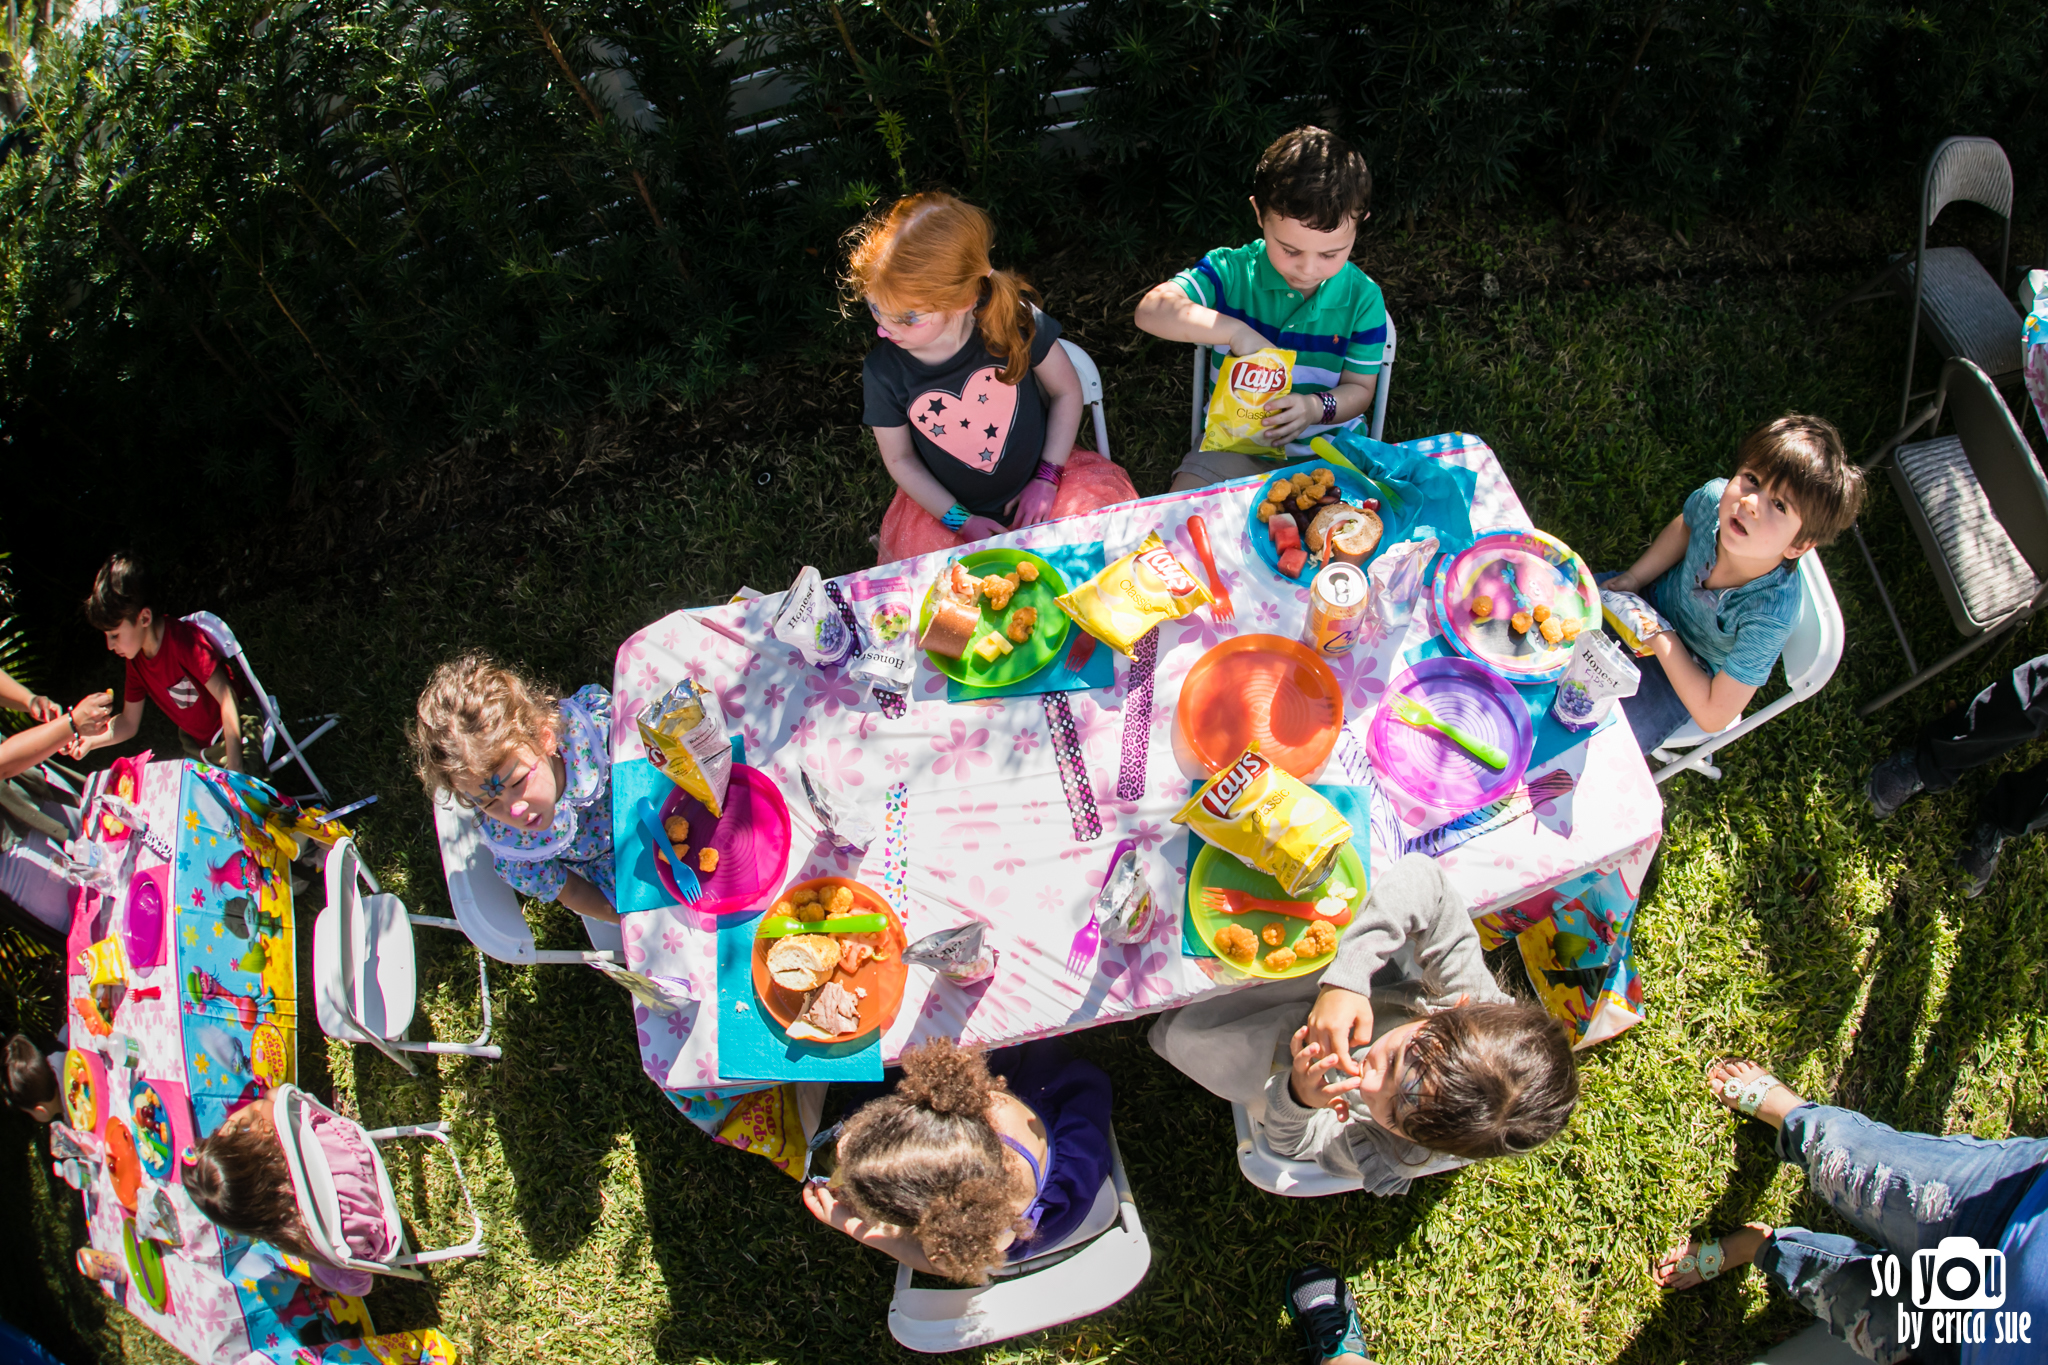 family-photography-so-you-by-erica-sue-ft-lauderdale-fl-florida-trolls-movie-birthday-party-3144.jpg